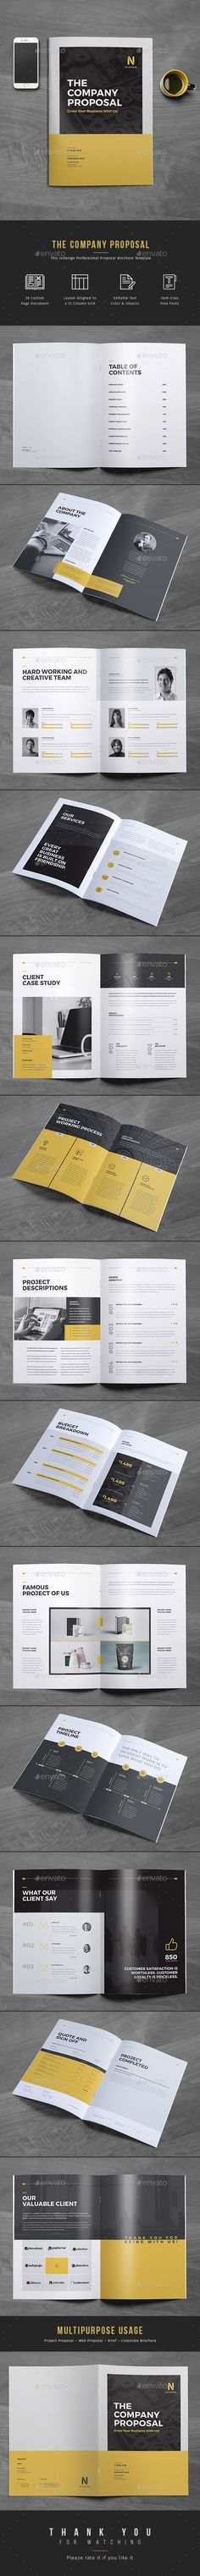 Business Proposal Document Template Corporate #marketing #firm #pro #proposal #document #template V05 .